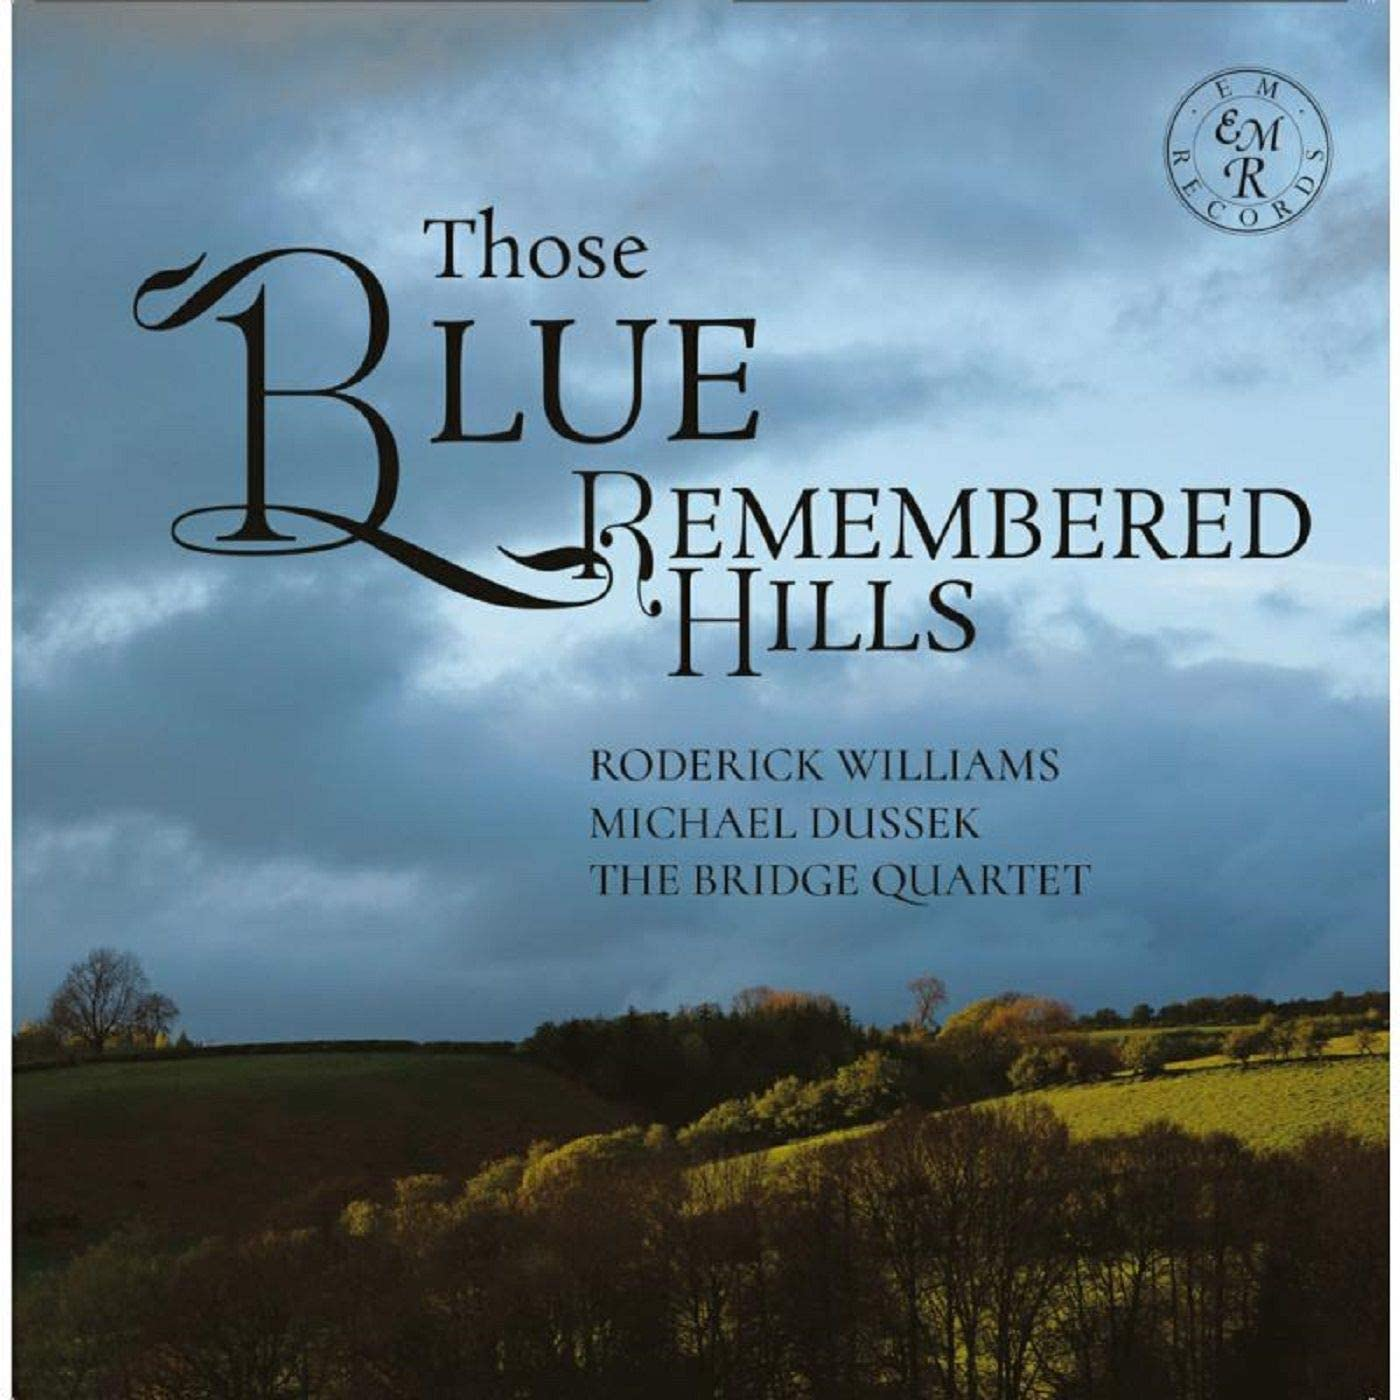 Review of Those Blue Remembered Hills